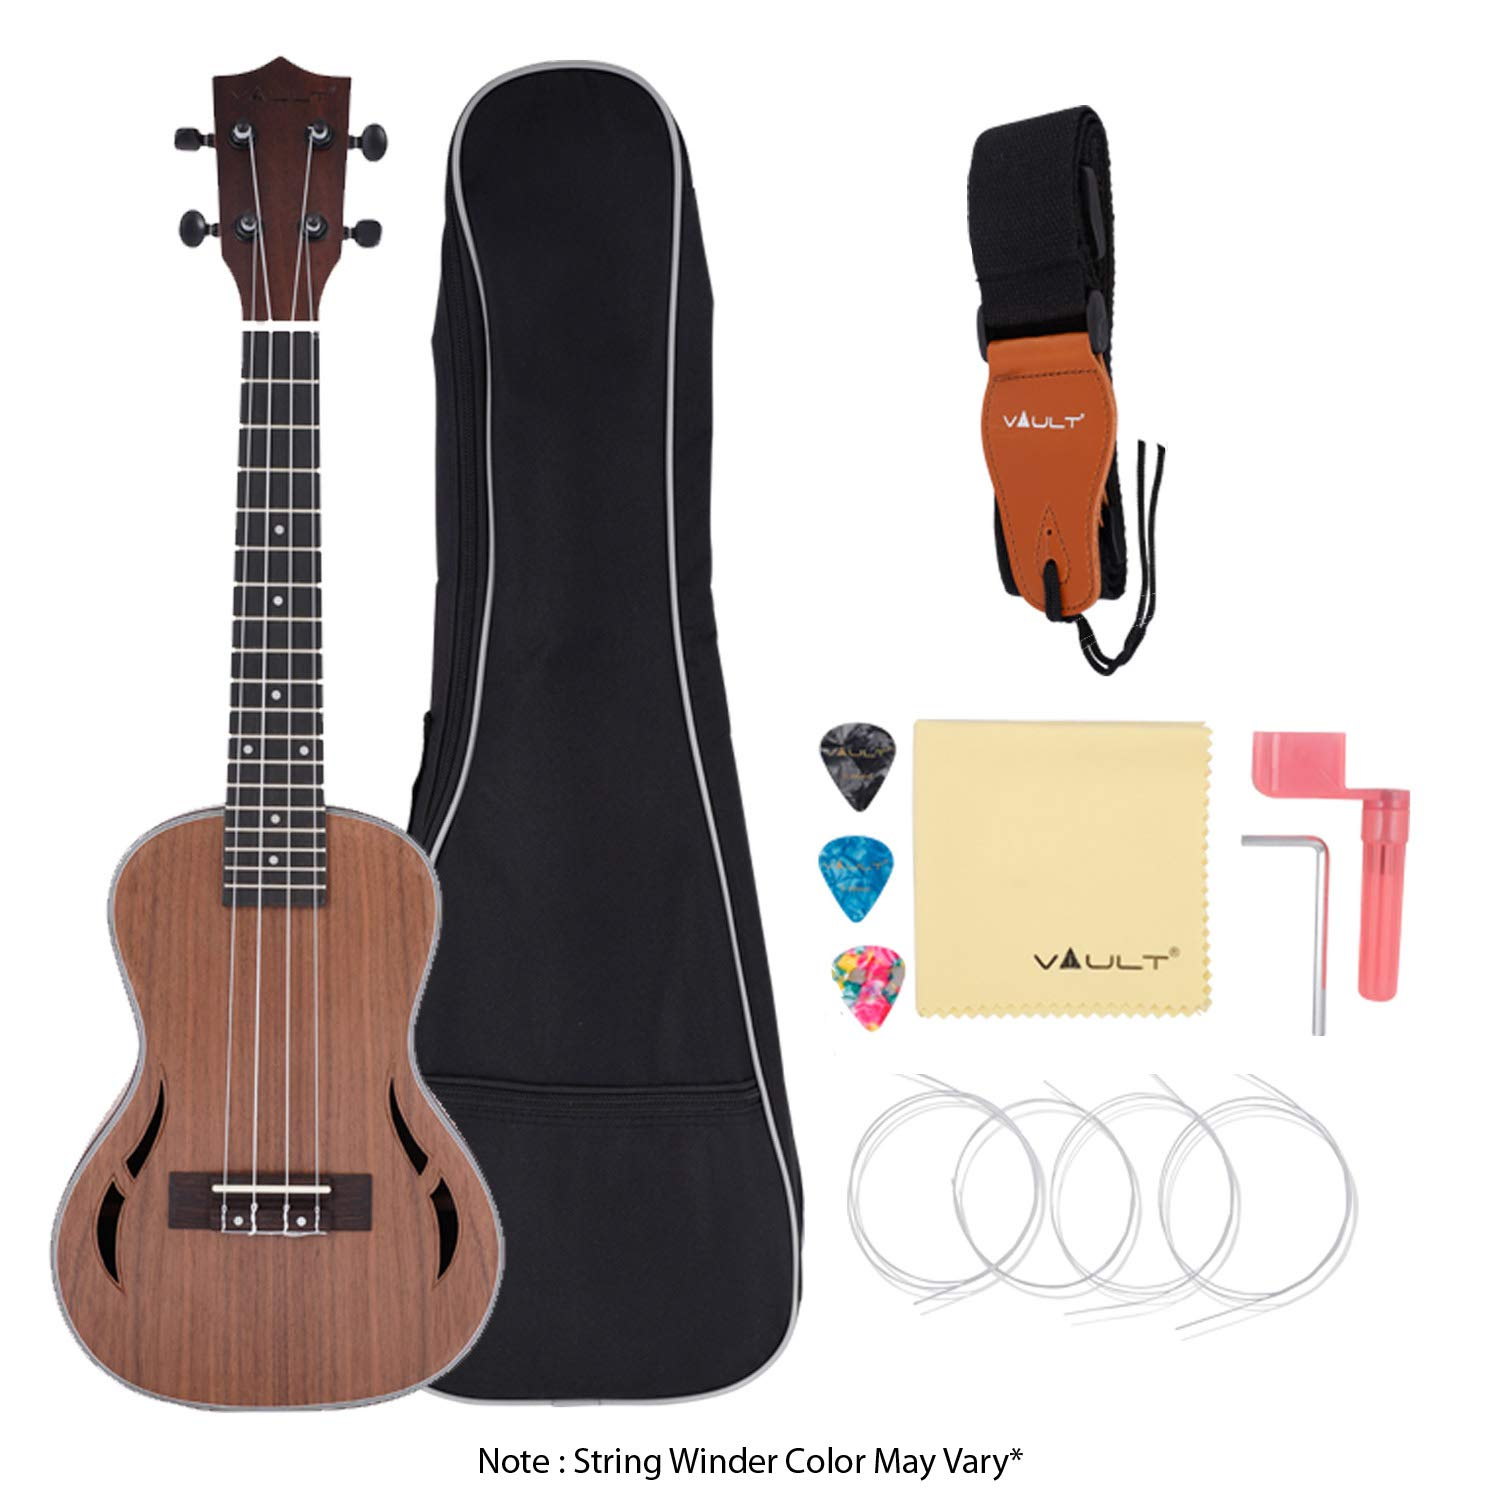 Vault UK-200 24-Inch Concert Ukulele With Gig bag, Strings, Polishing Cloth, String Winder and Picks product image